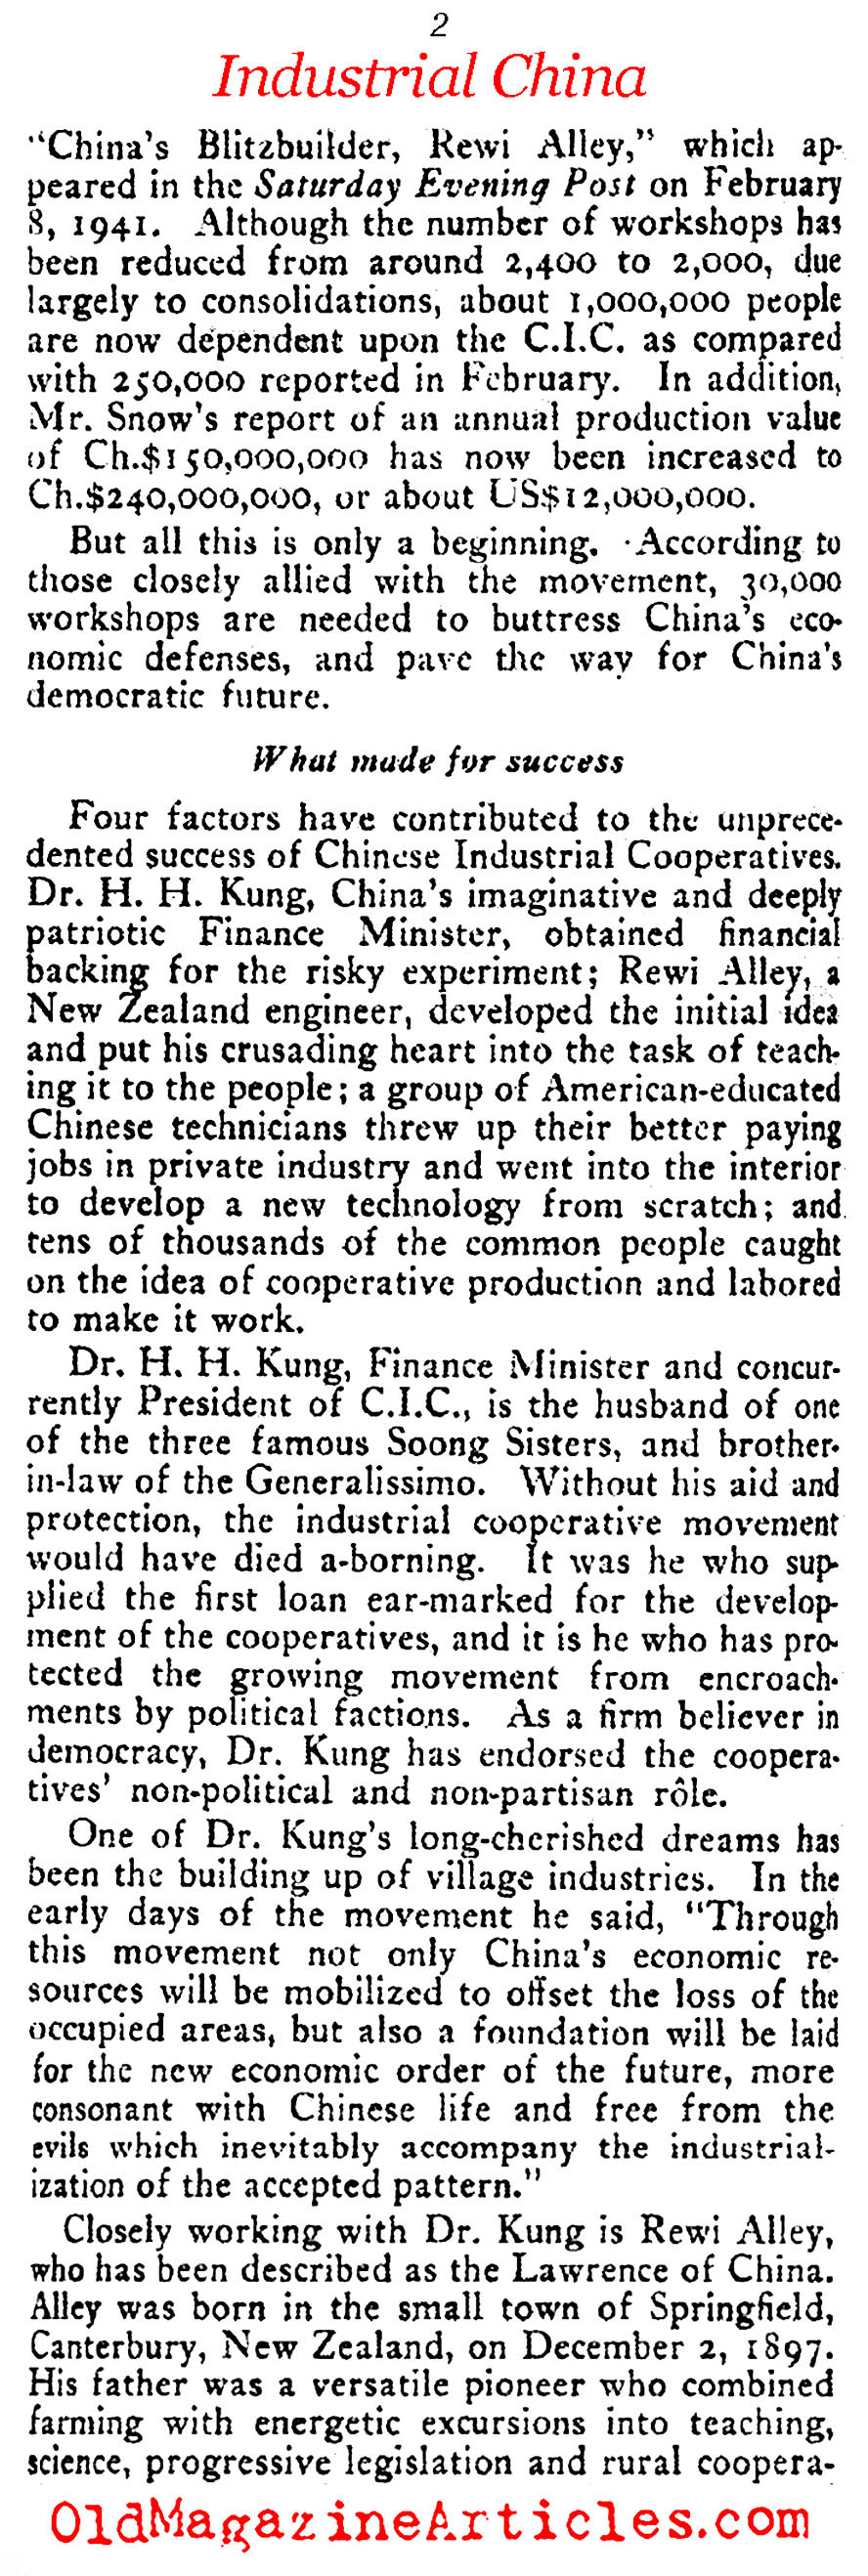 China's Industrial Cooperatives (The Commonweal, 1941)